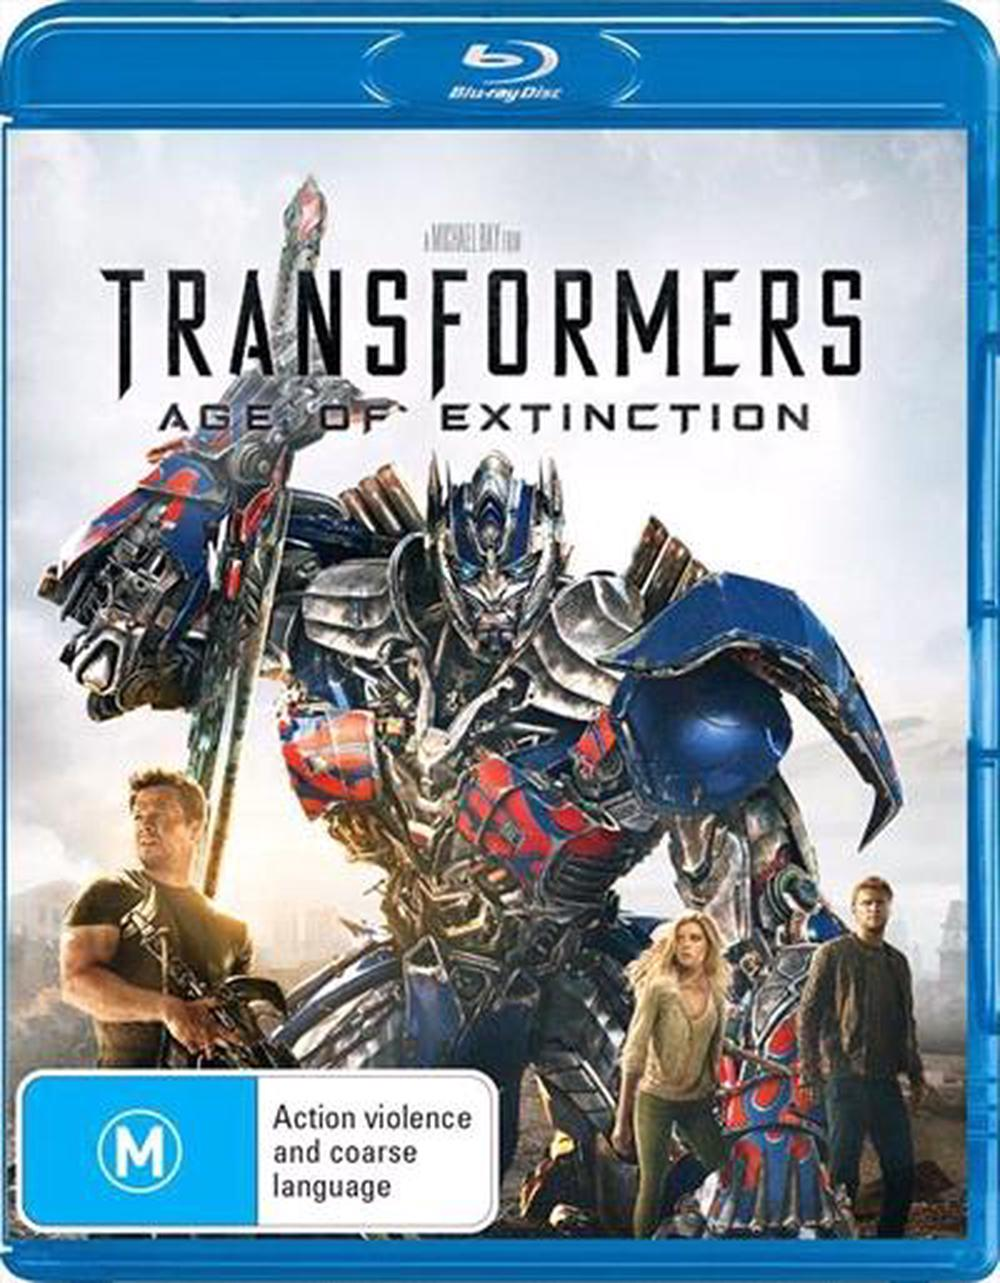 Transformers: Age Of Extinction - Blu-ray Region B Free Shipping!